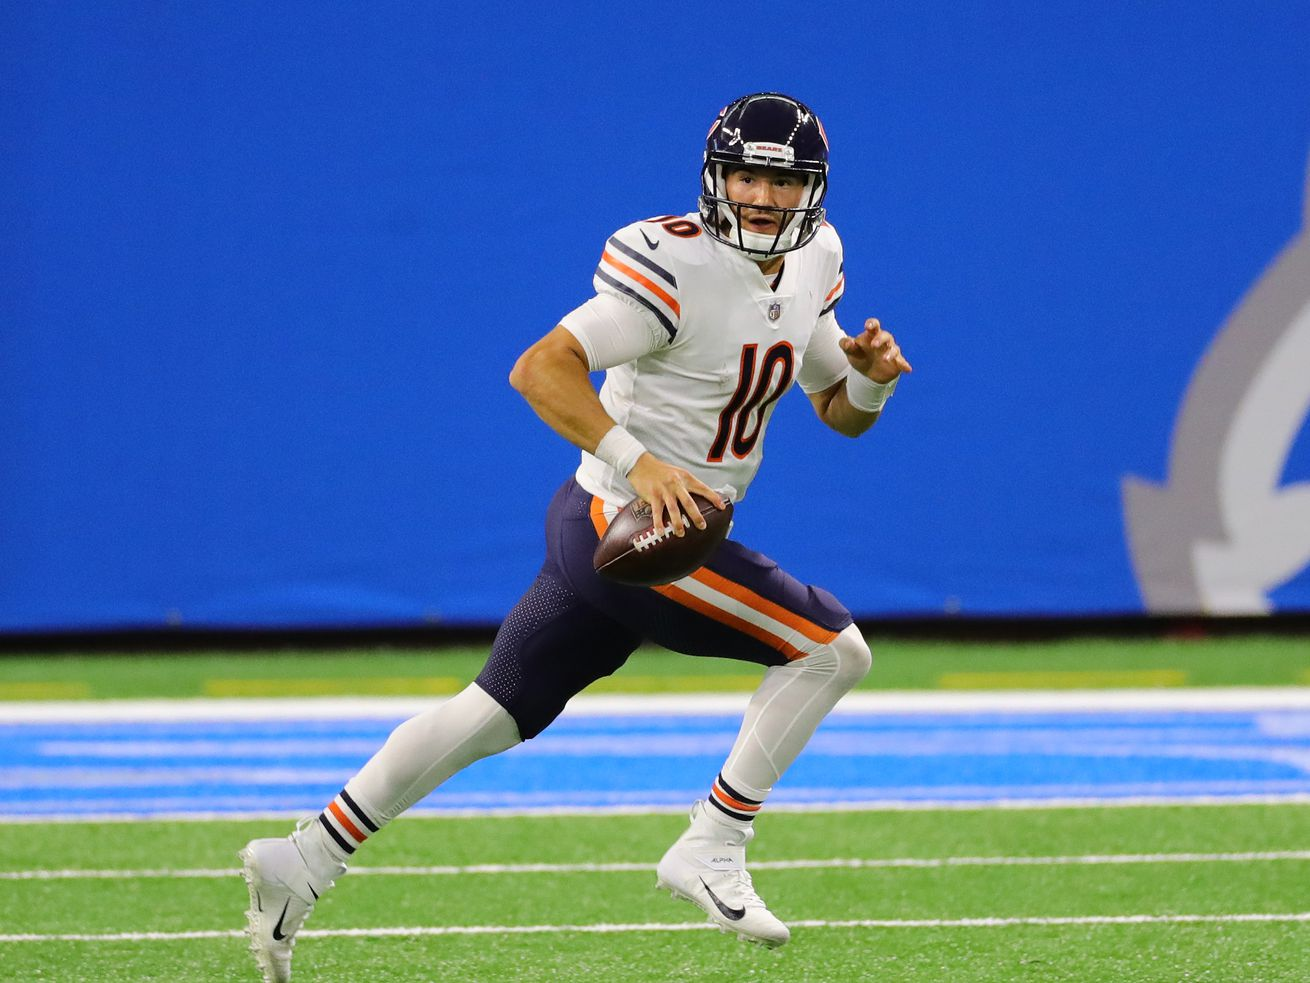 QB controversy? What QB controversy? Mitch Trubisky leads Bears to come-from-behind victory.